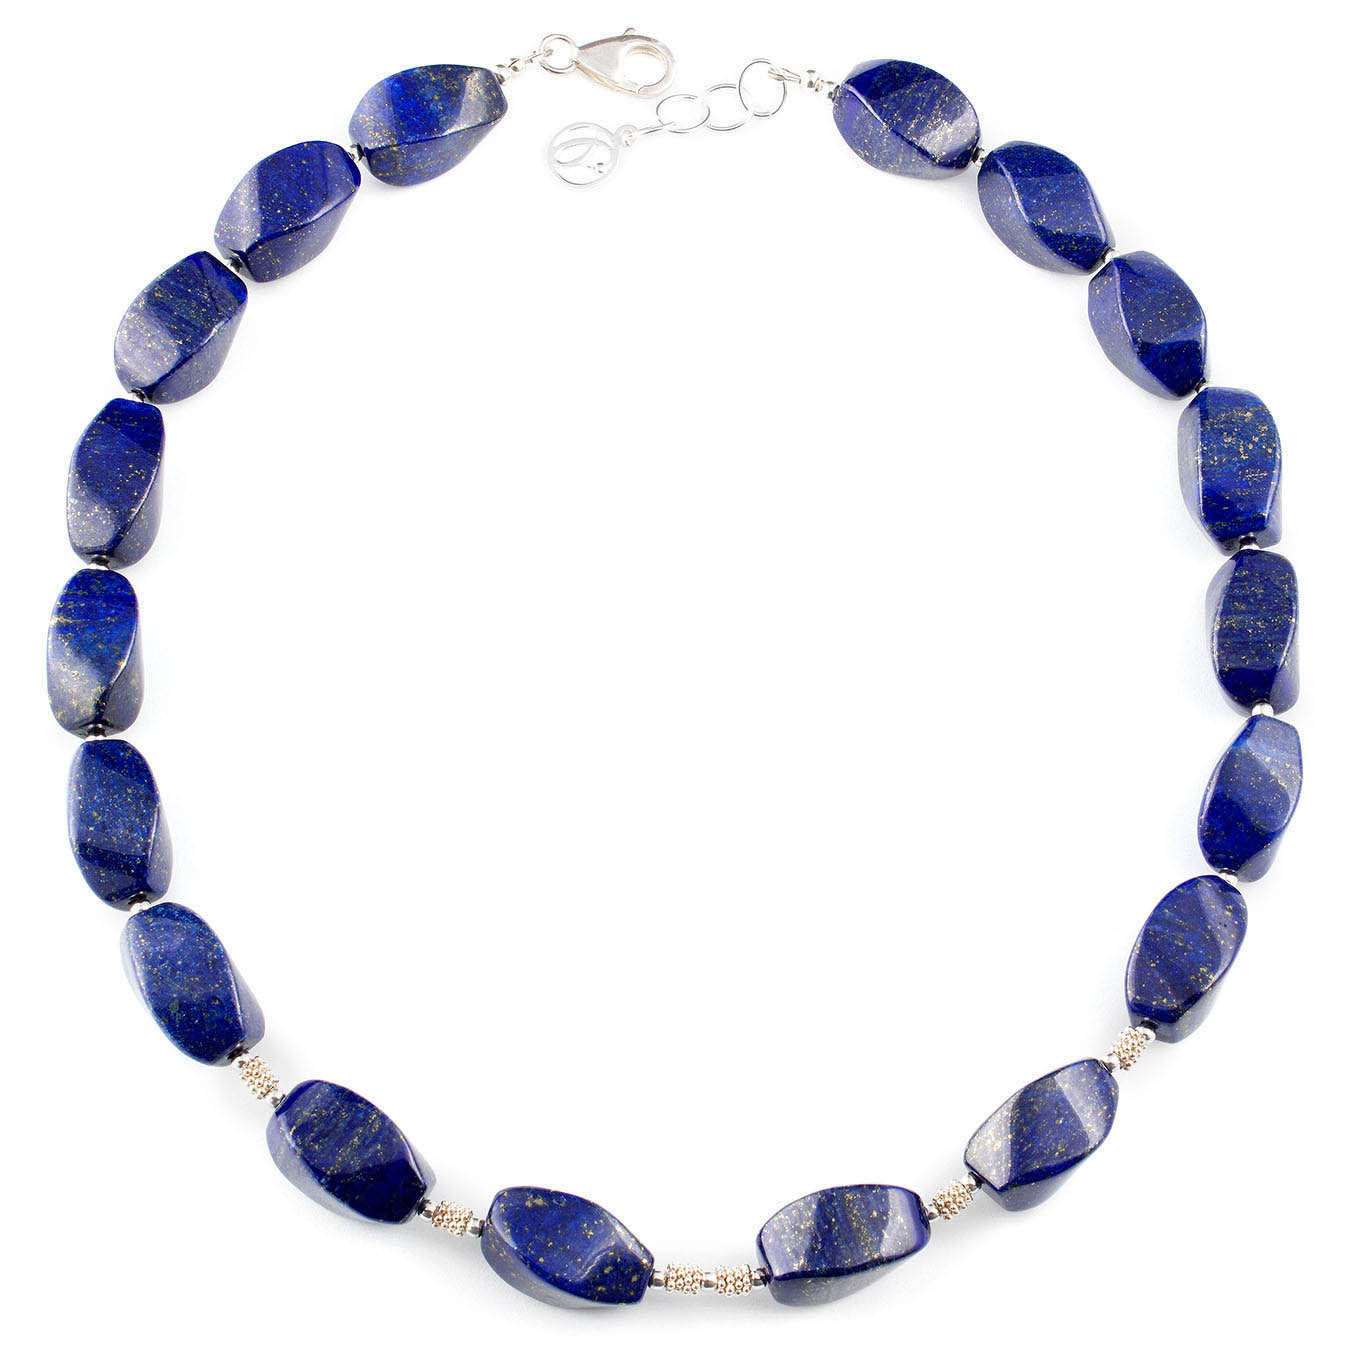 Gemstone necklace set made with twisted lapis lazuli and silver